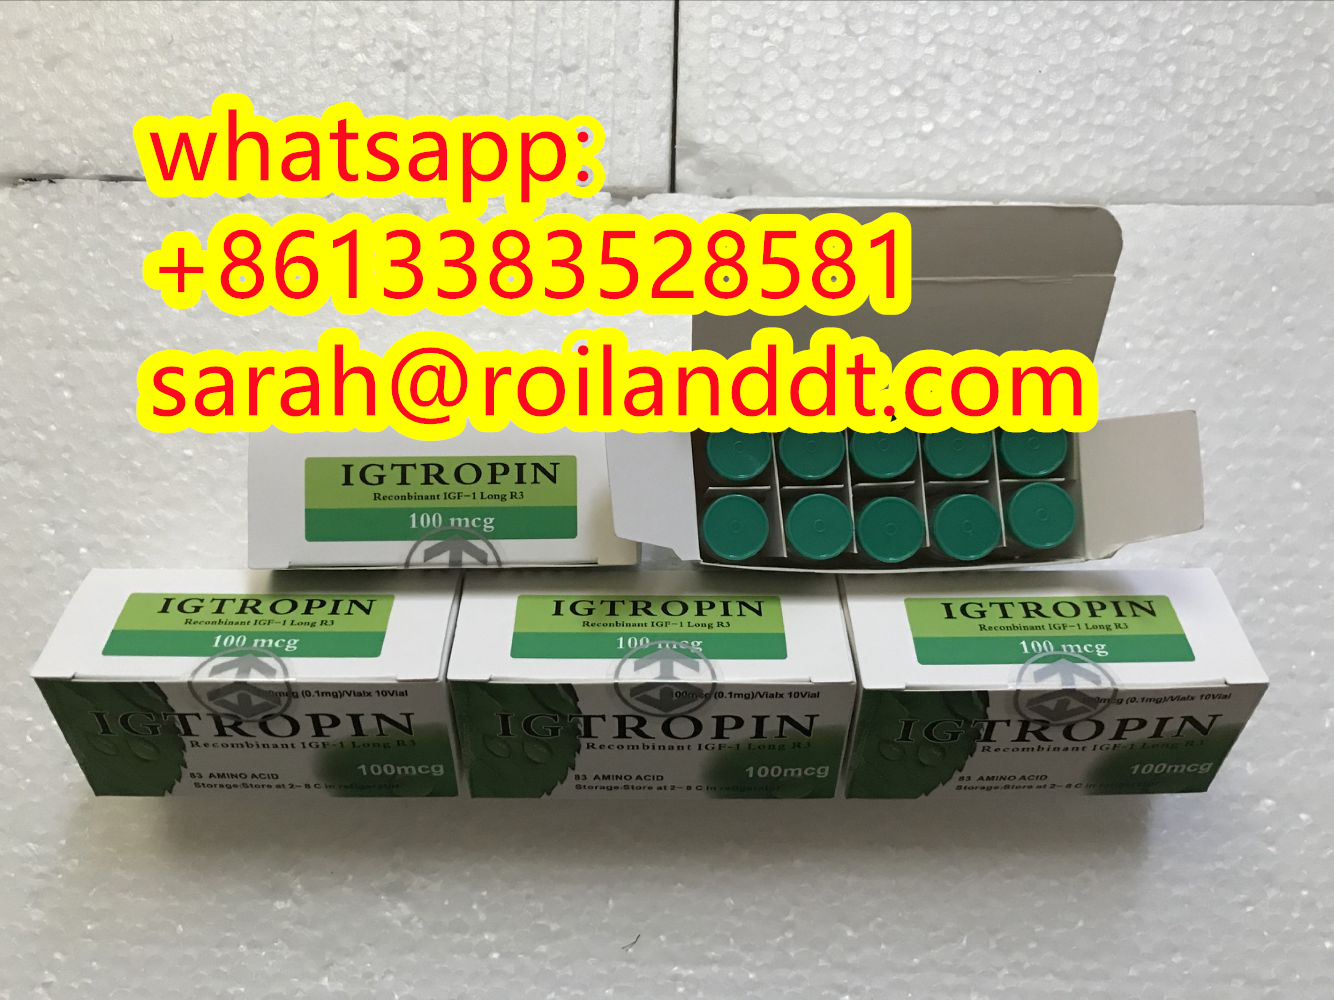 Fast shipping HGH Igtropin Steroid CAS 946870-92-4 whatsapp+8613383528581